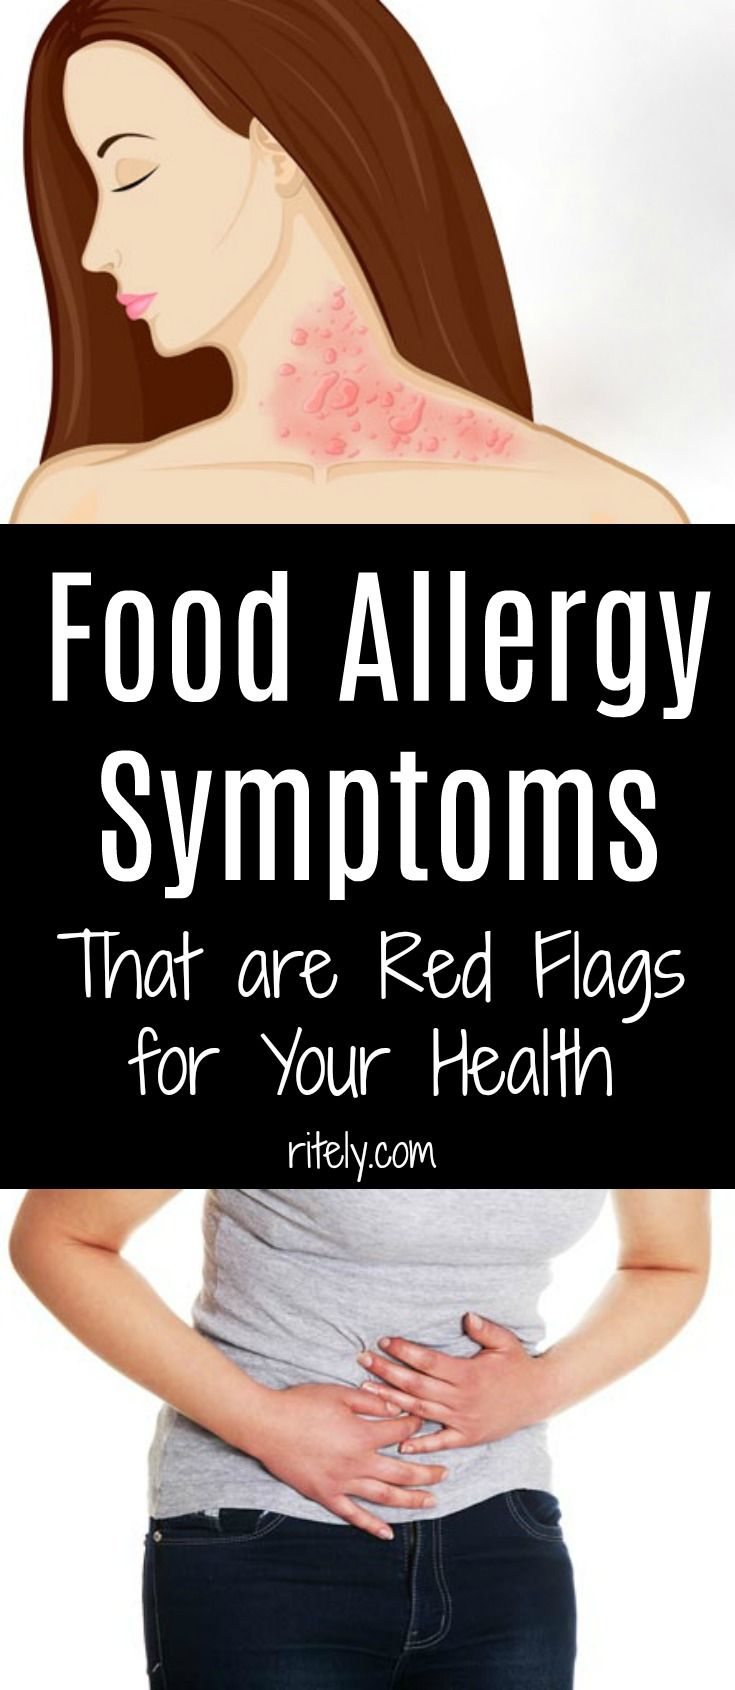 Food Allergy Symptoms That are Red Flags for Your Health